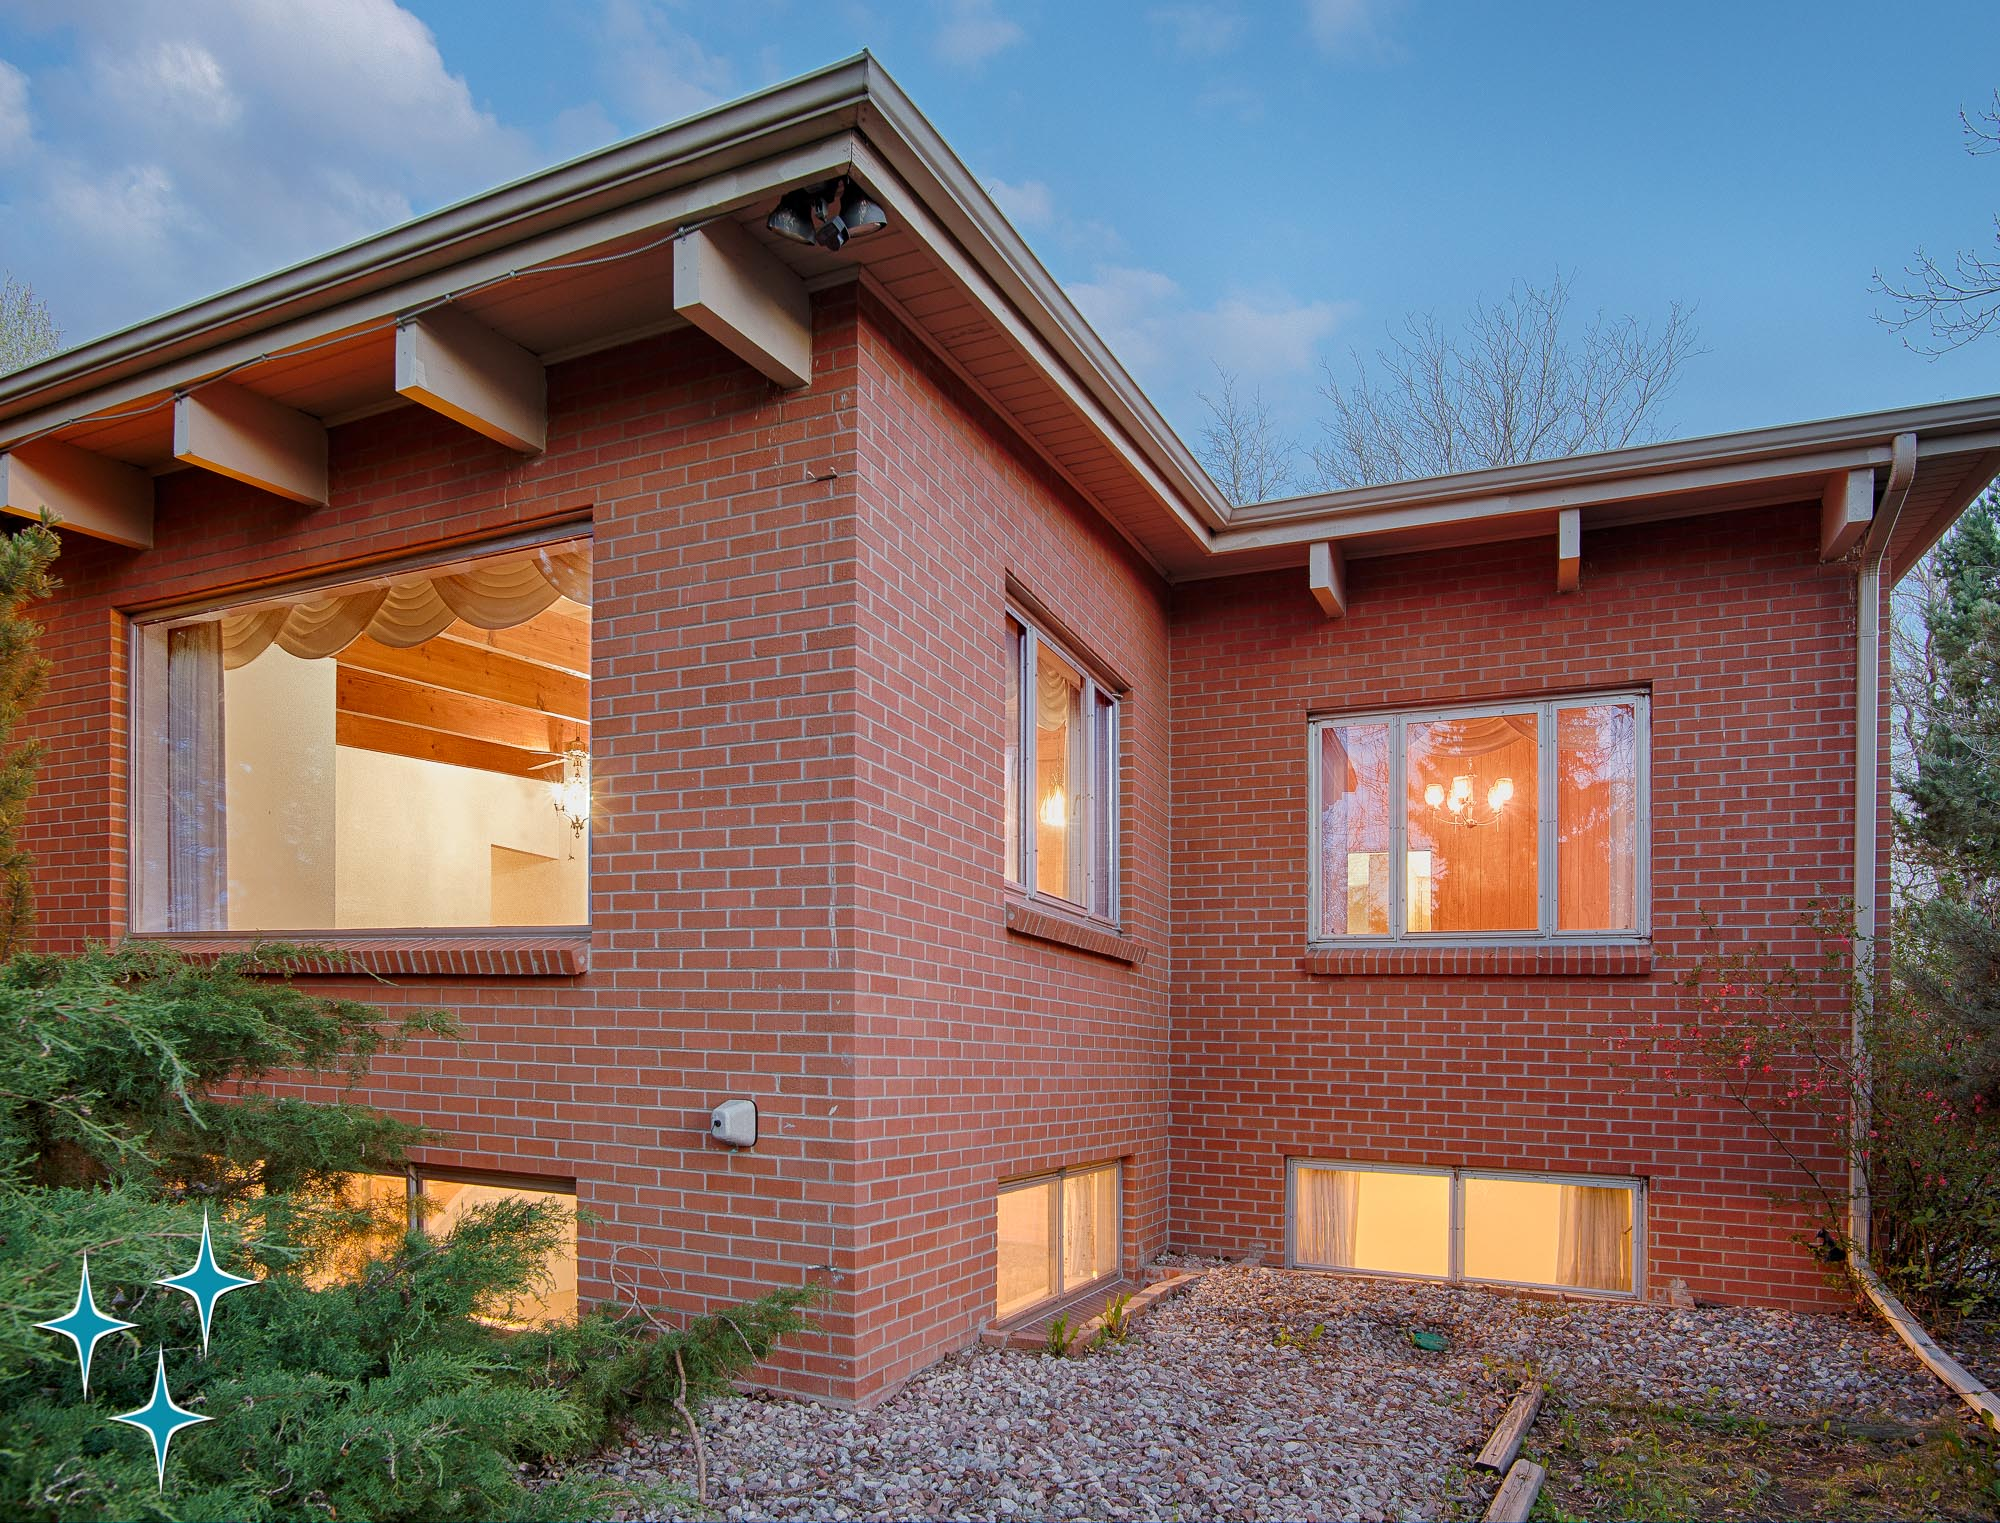 10350 W 35th Avenue, a mid-century modern all-brick rambler in Wheat Ridge, Colorado. SOLD by Adrian Kinney, Broker Associate, Resident Realty South Metro.